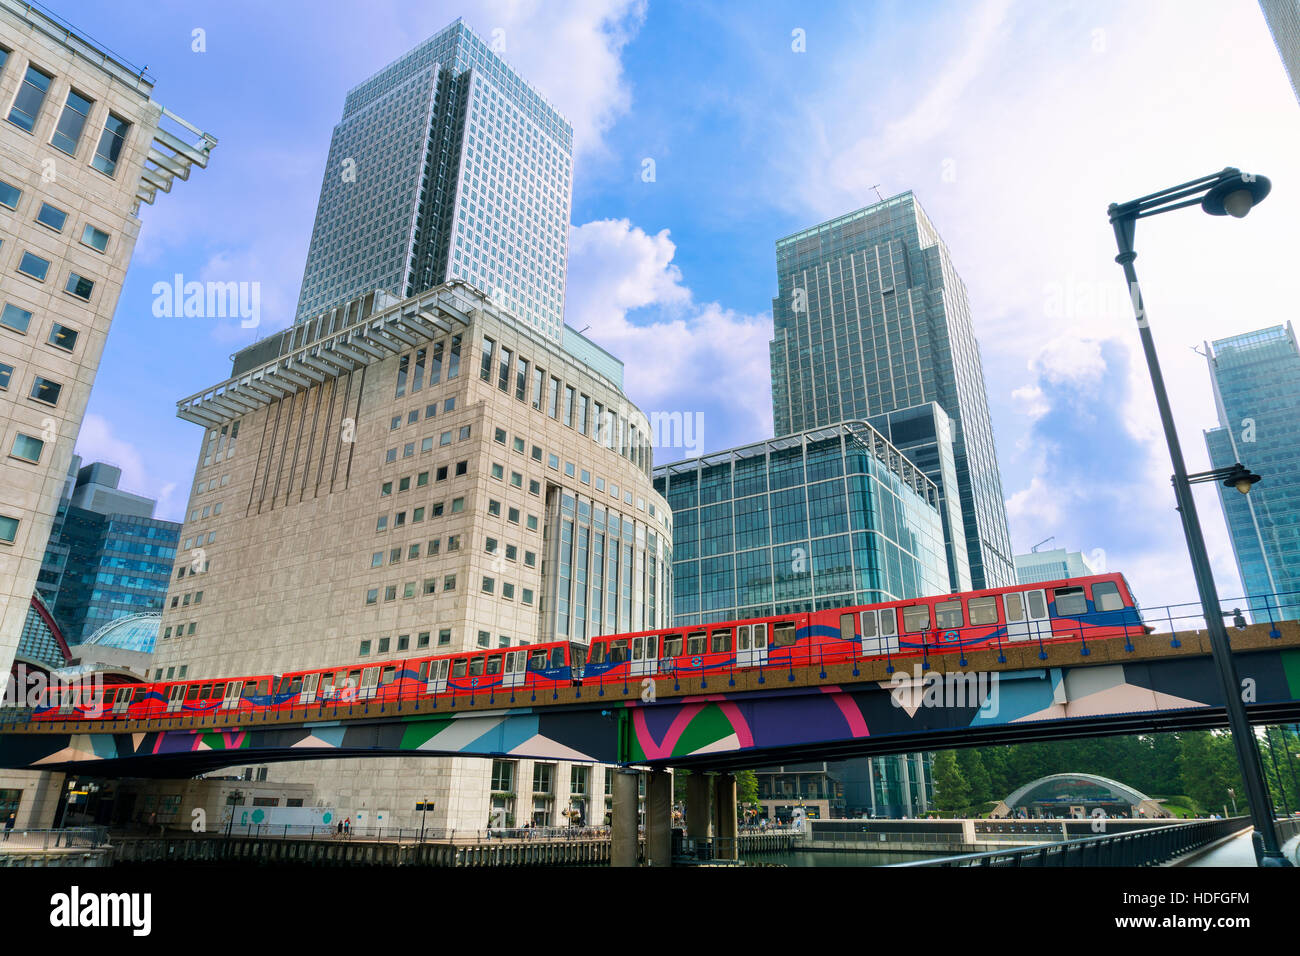 London, England, Canary Wharf  - one of the two major business districts in London Stock Photo